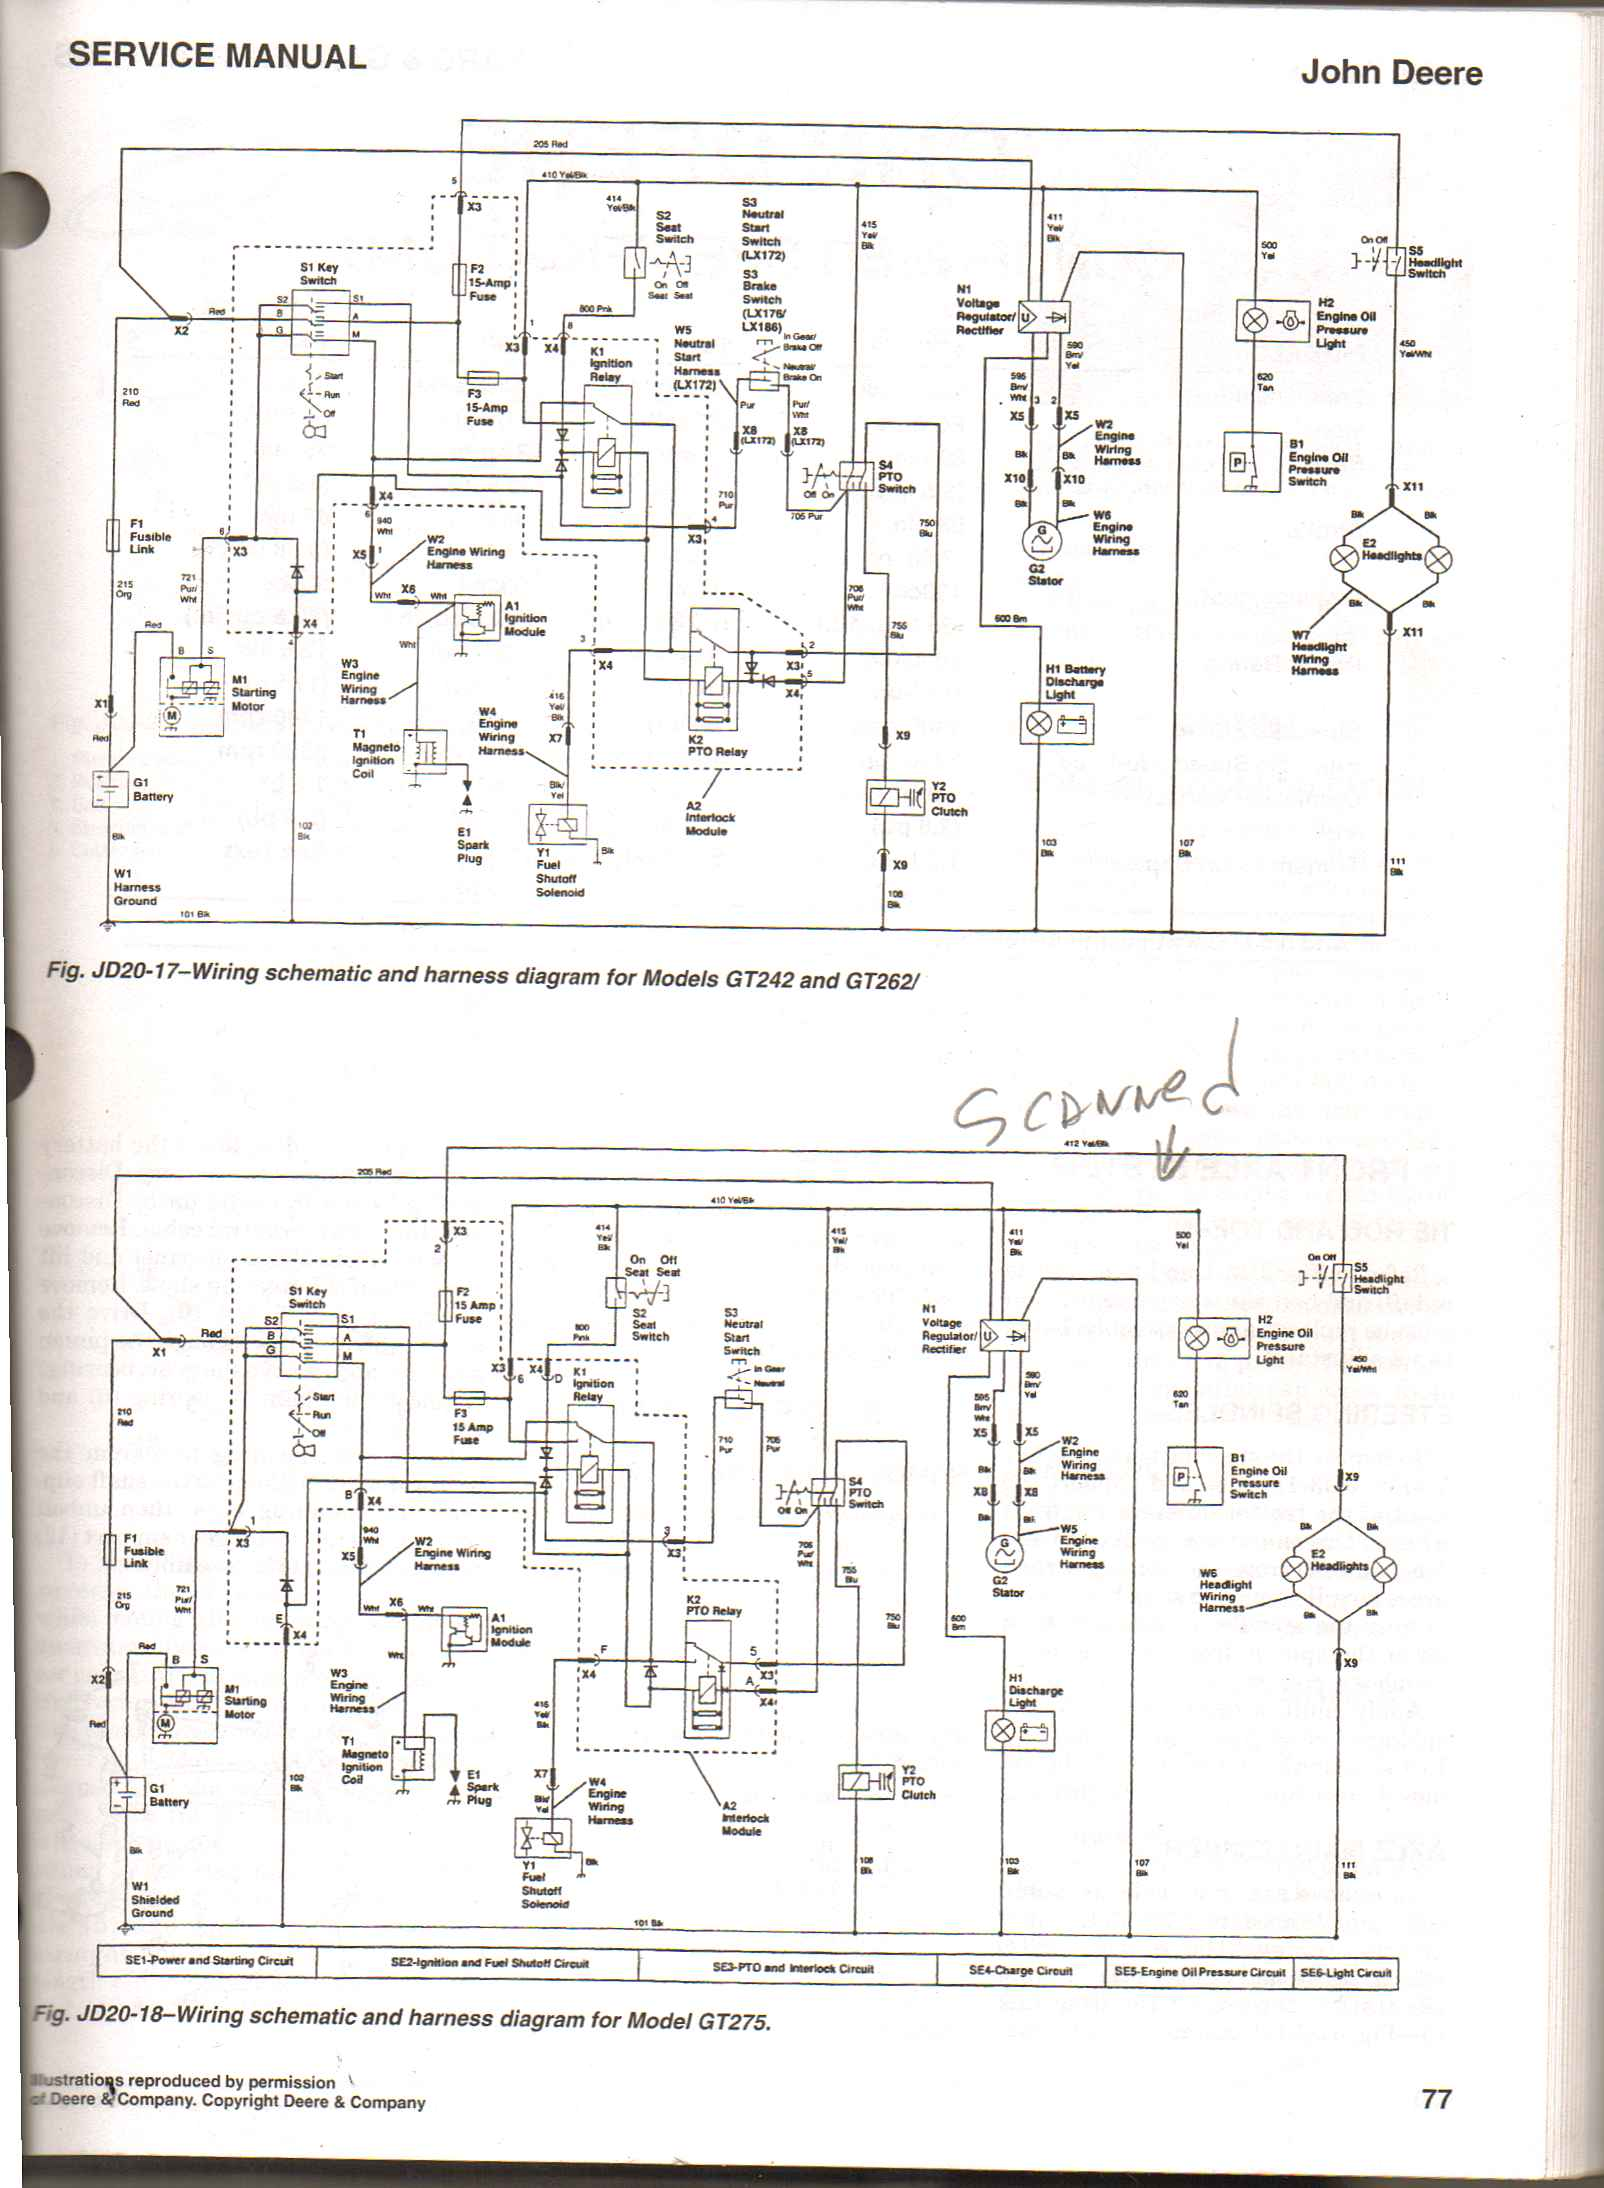 v twin schematic the wiring diagram john deere 235 18hp b s v twin running normal engine quit schematic